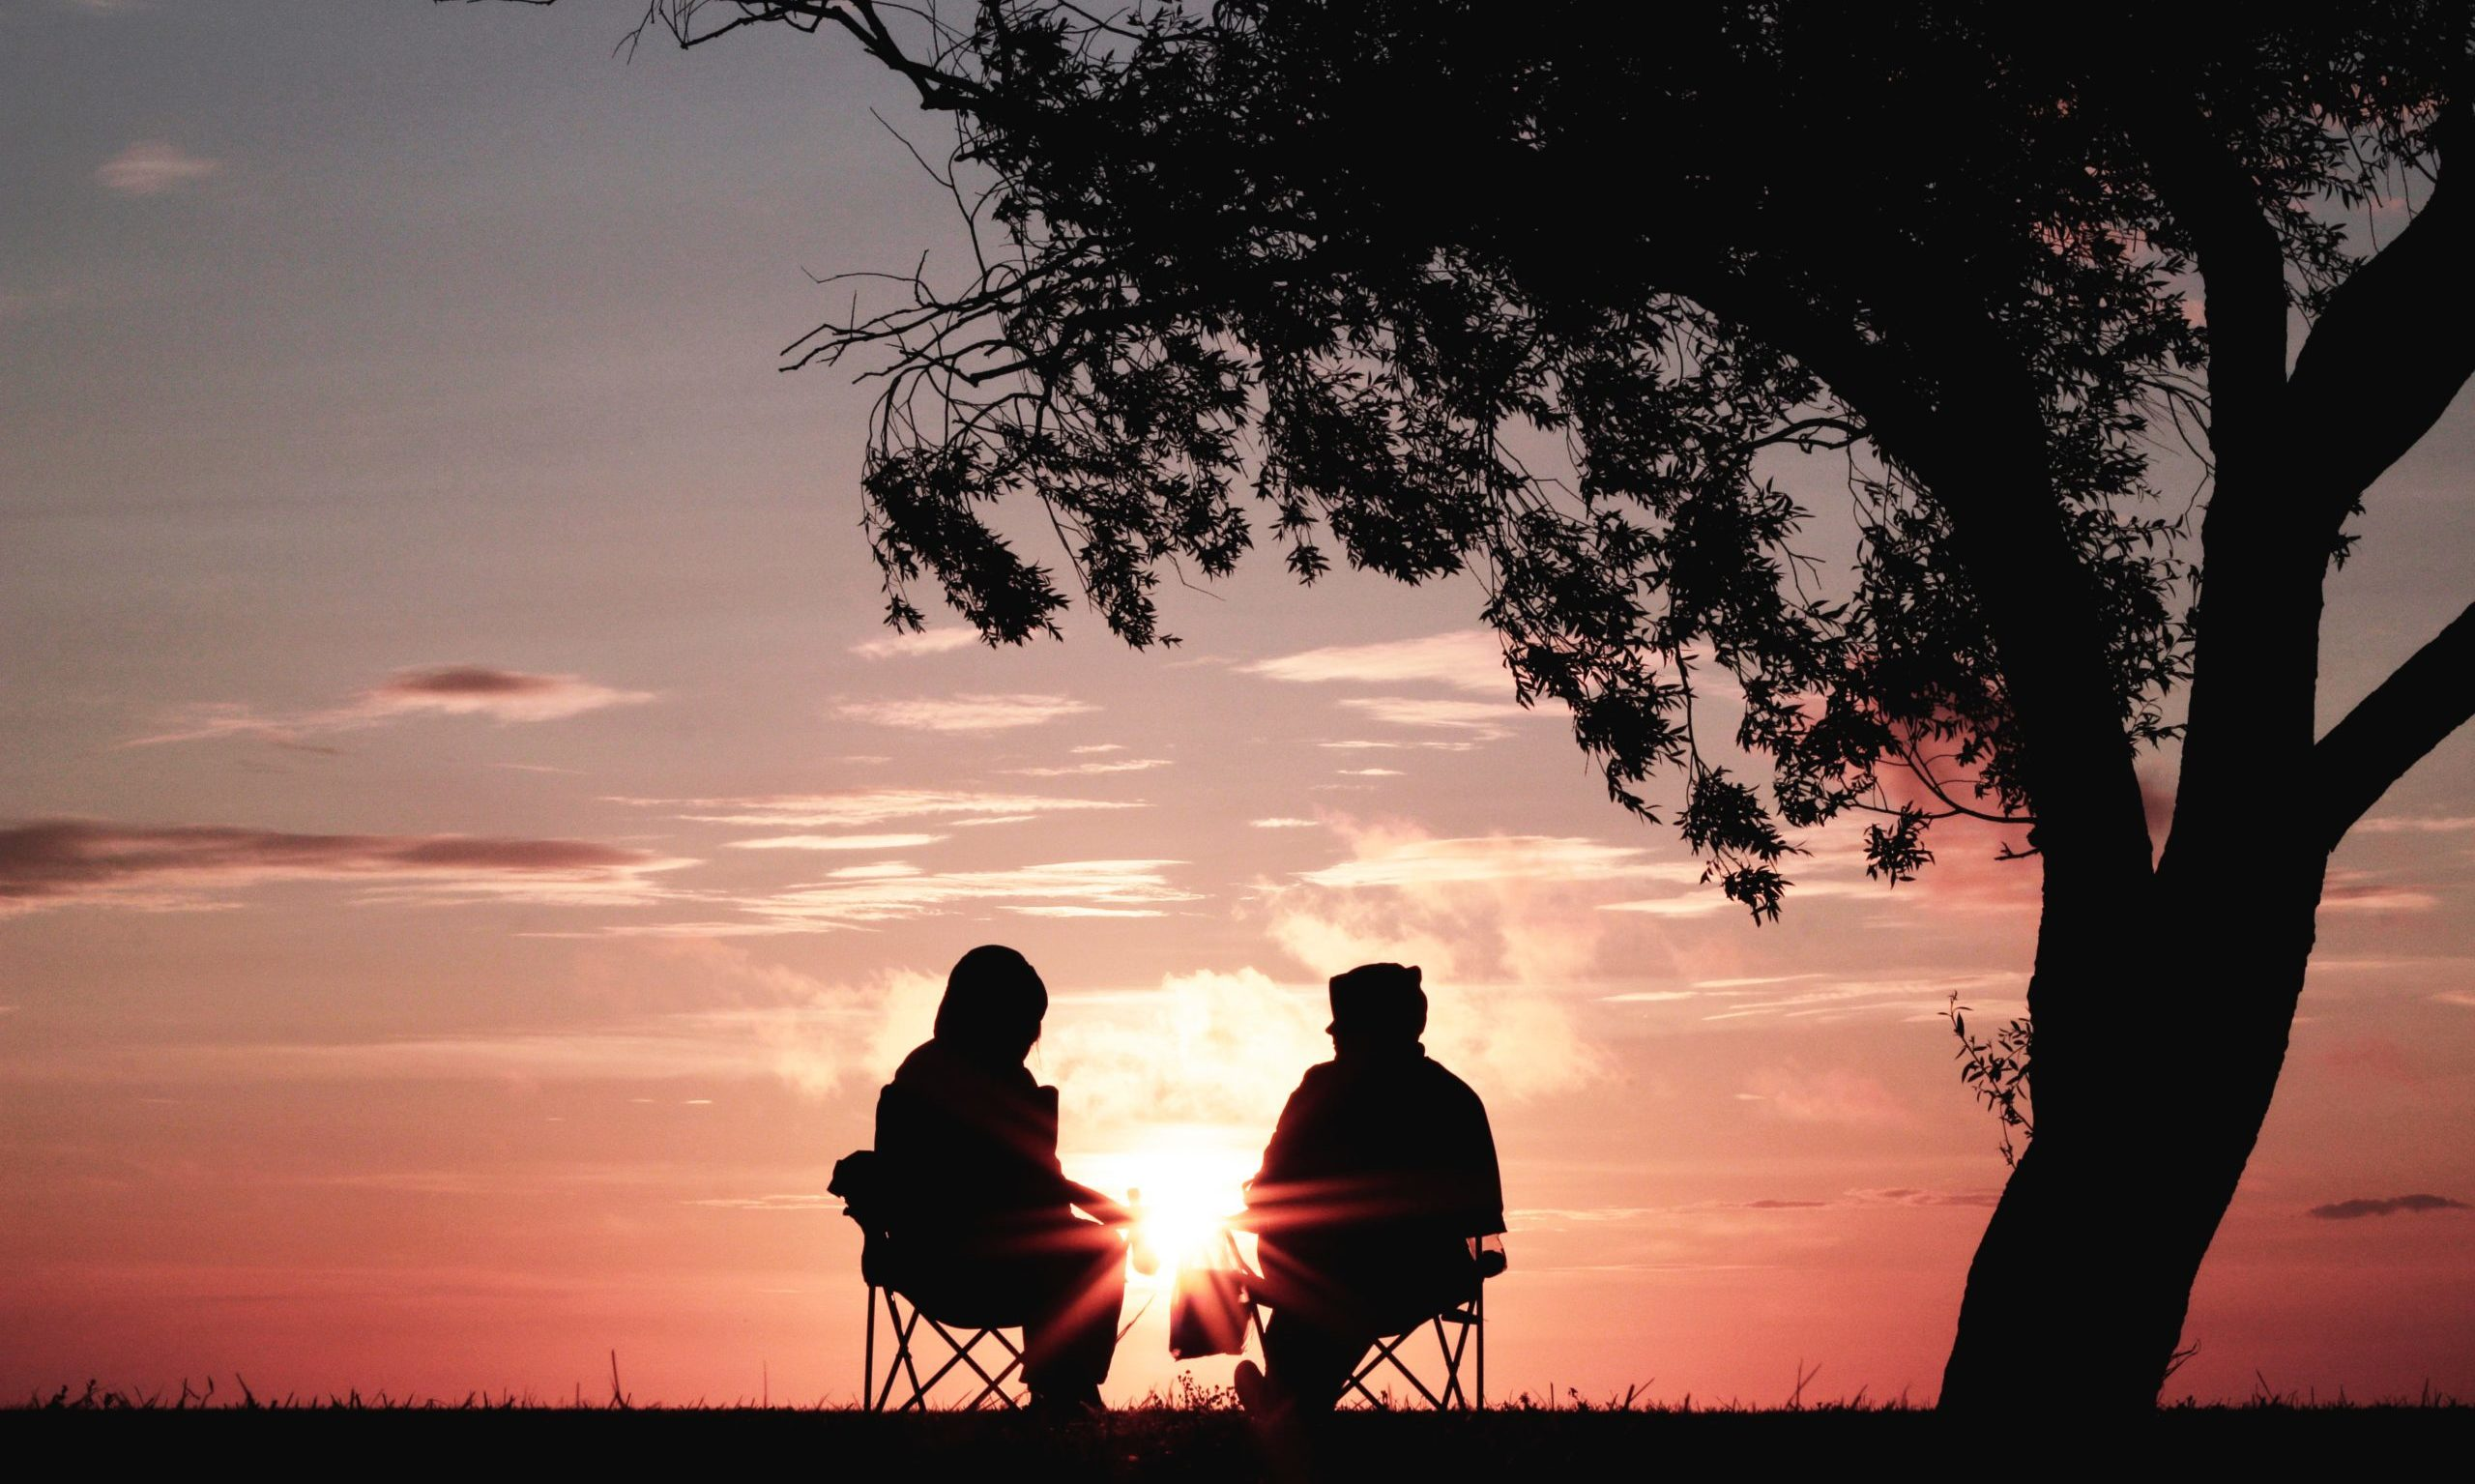 two people watching the sunset our care psychosocial support Endless Journey Hospice Omaha Nebraska